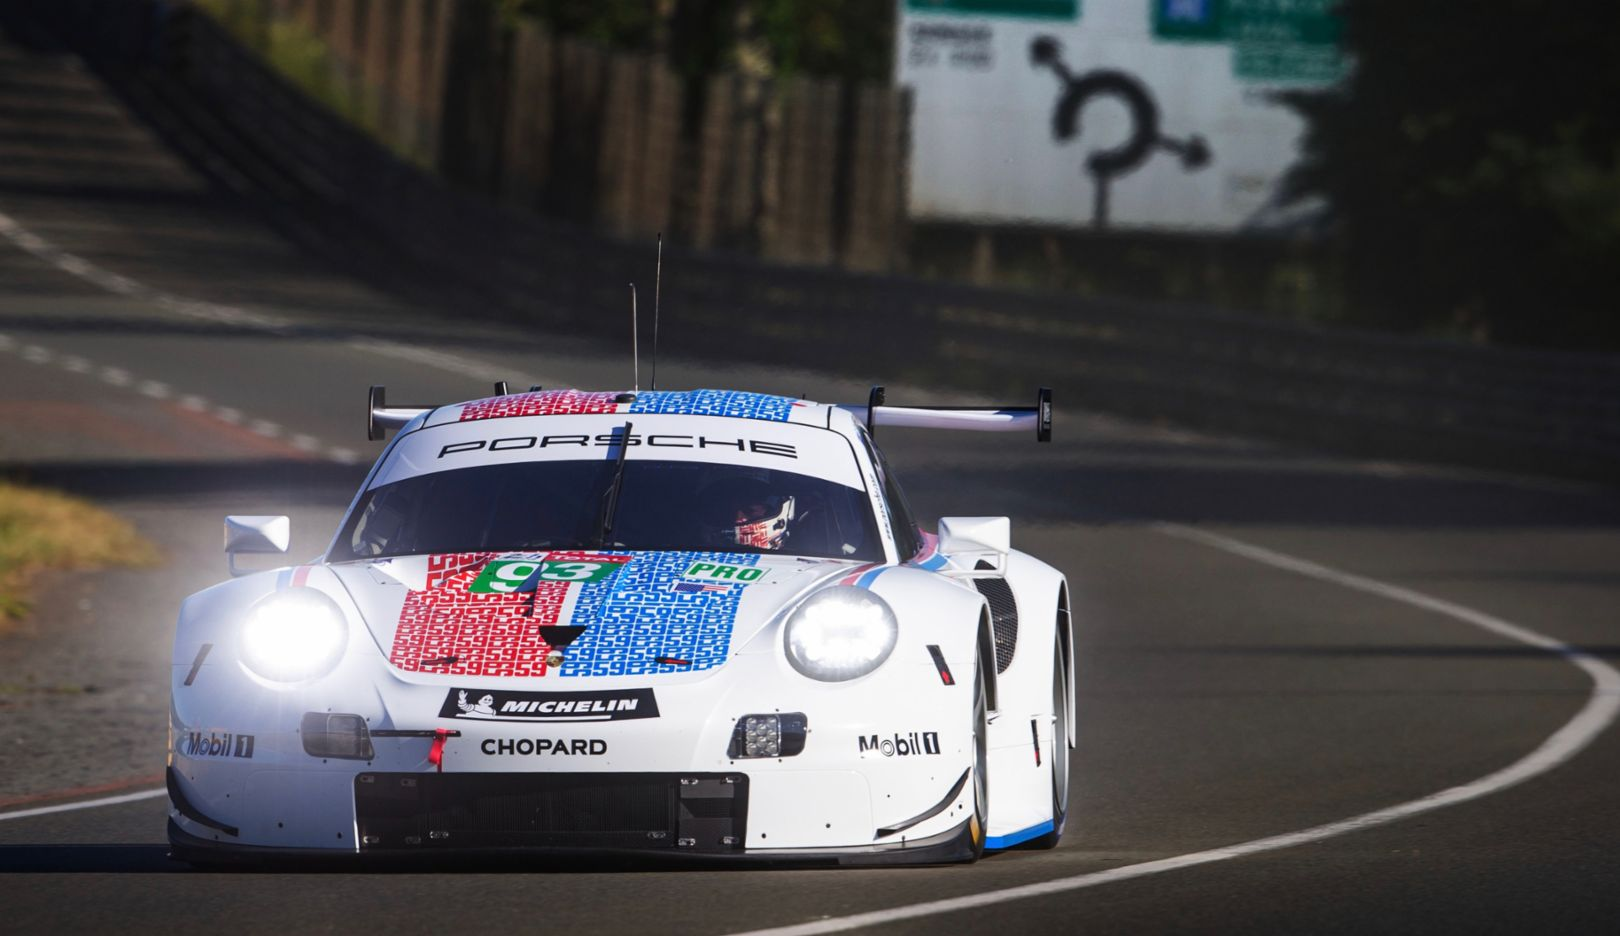 WEC Porsche is ready to defend Le Mans title after